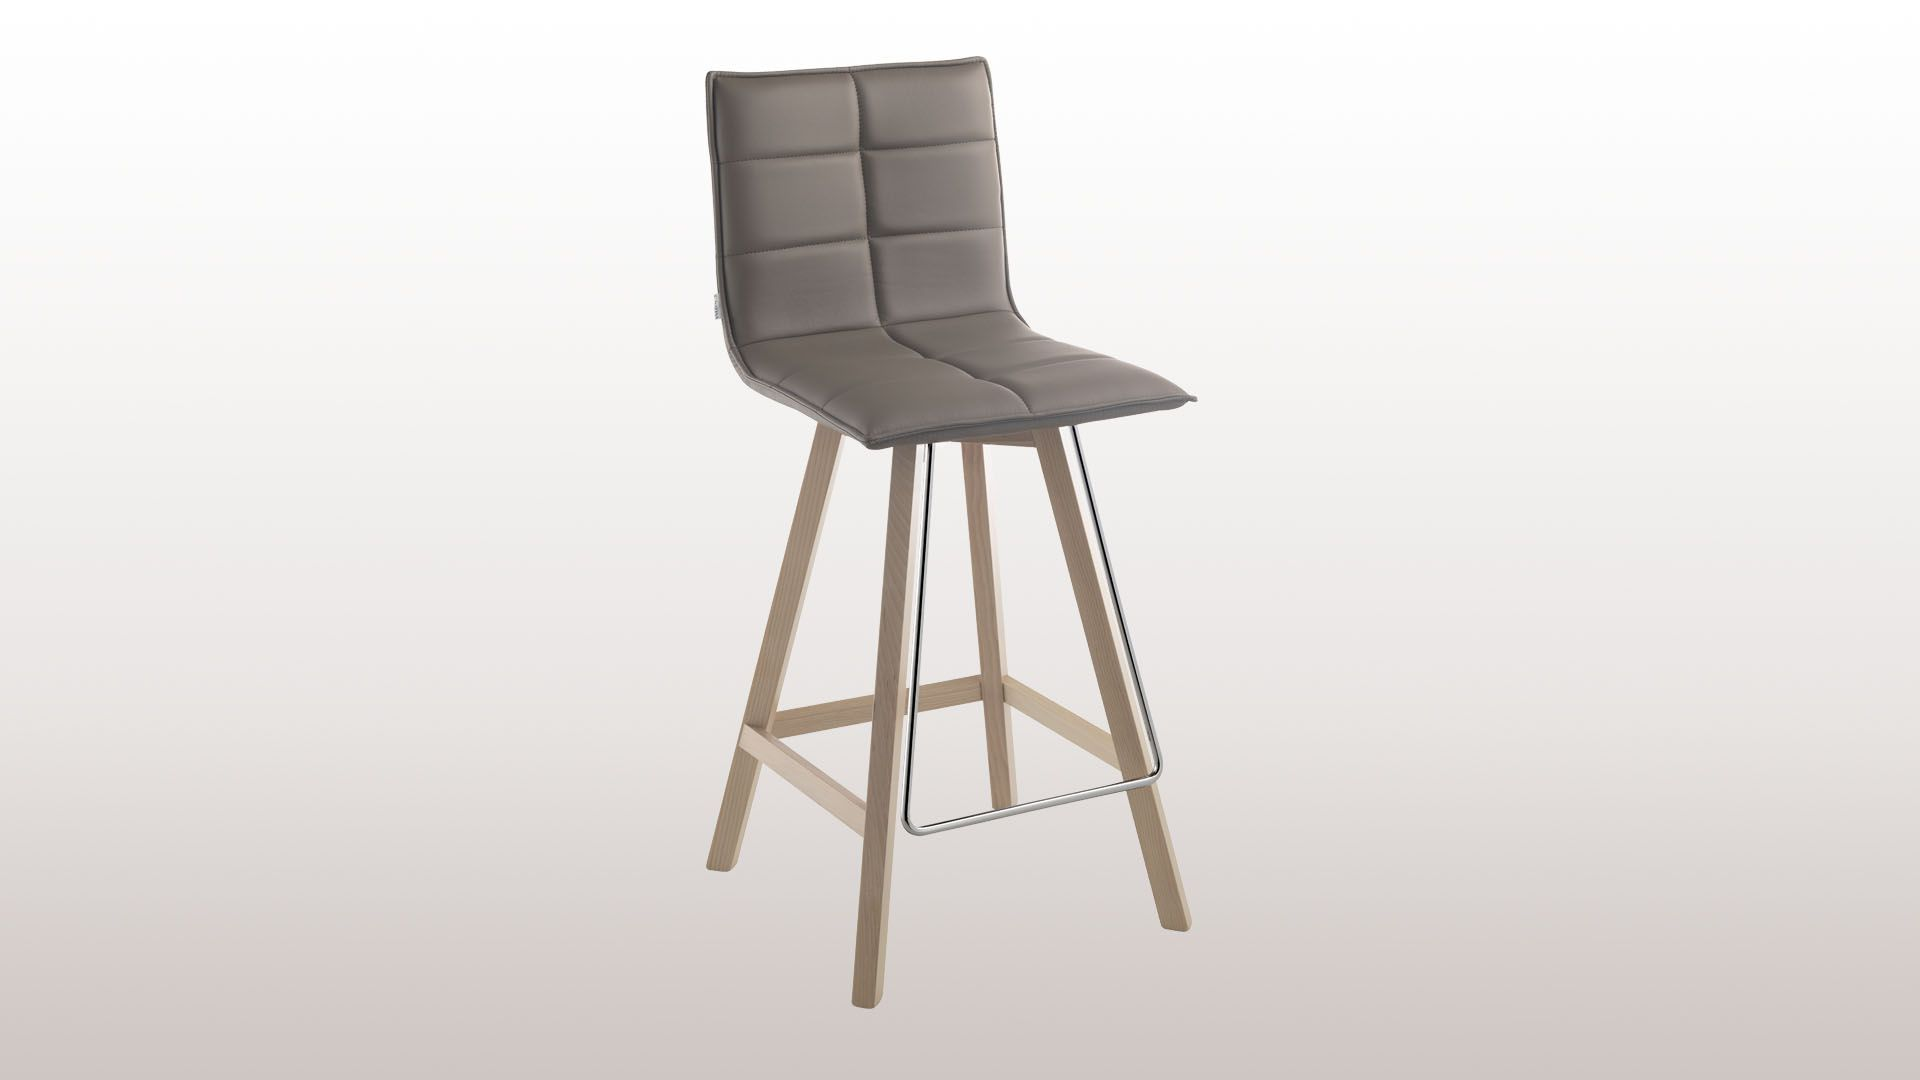 Tabourets Schmidt Tabouret Dream 4 Style Design Cuisinella Home Pinterest